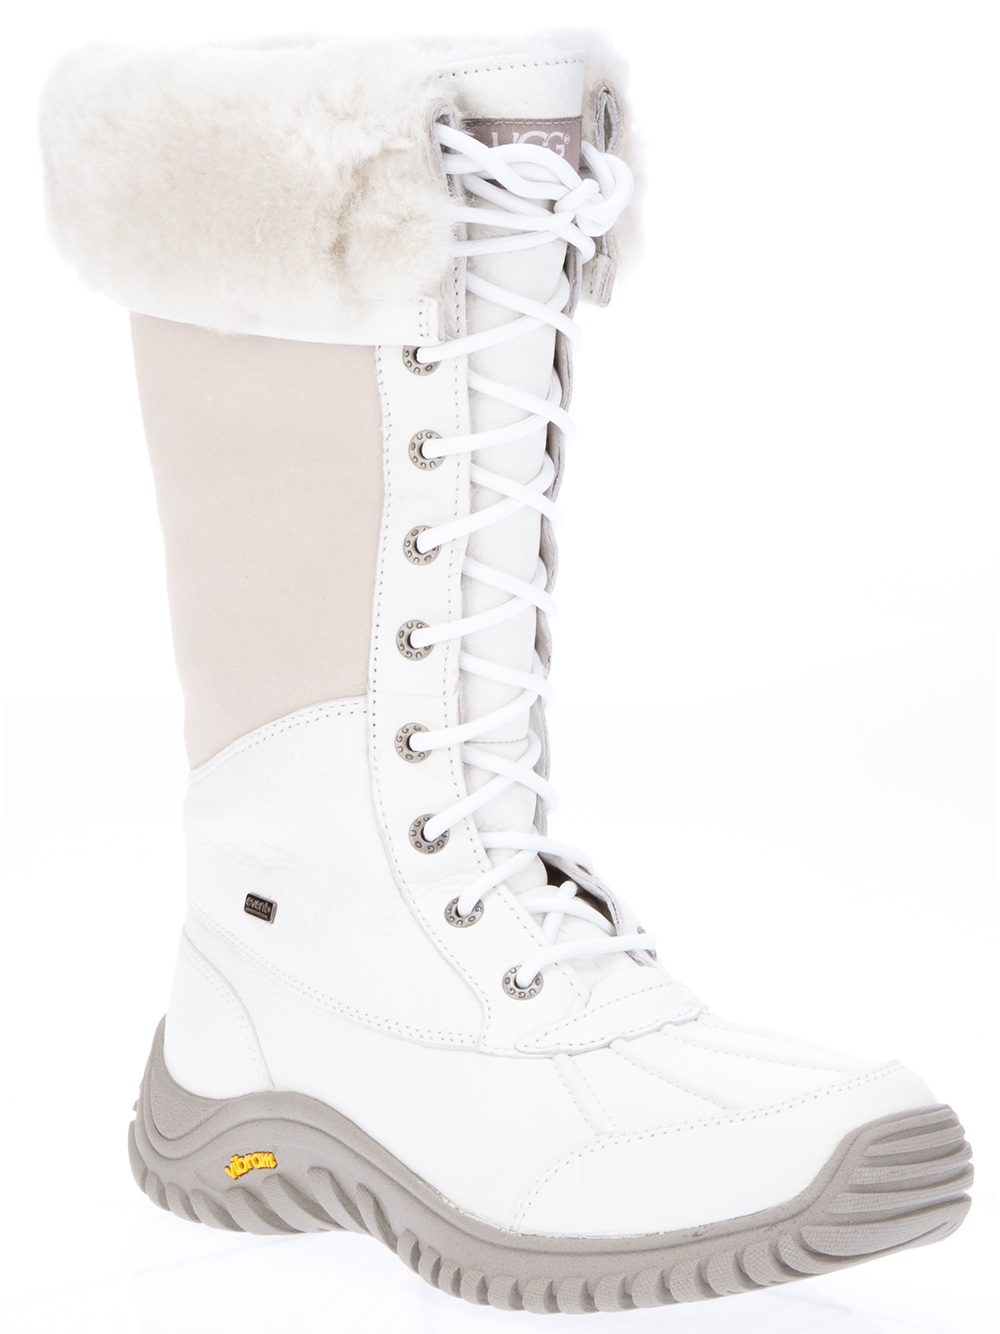 Ugg Adirondack Snow Boot In White Lyst